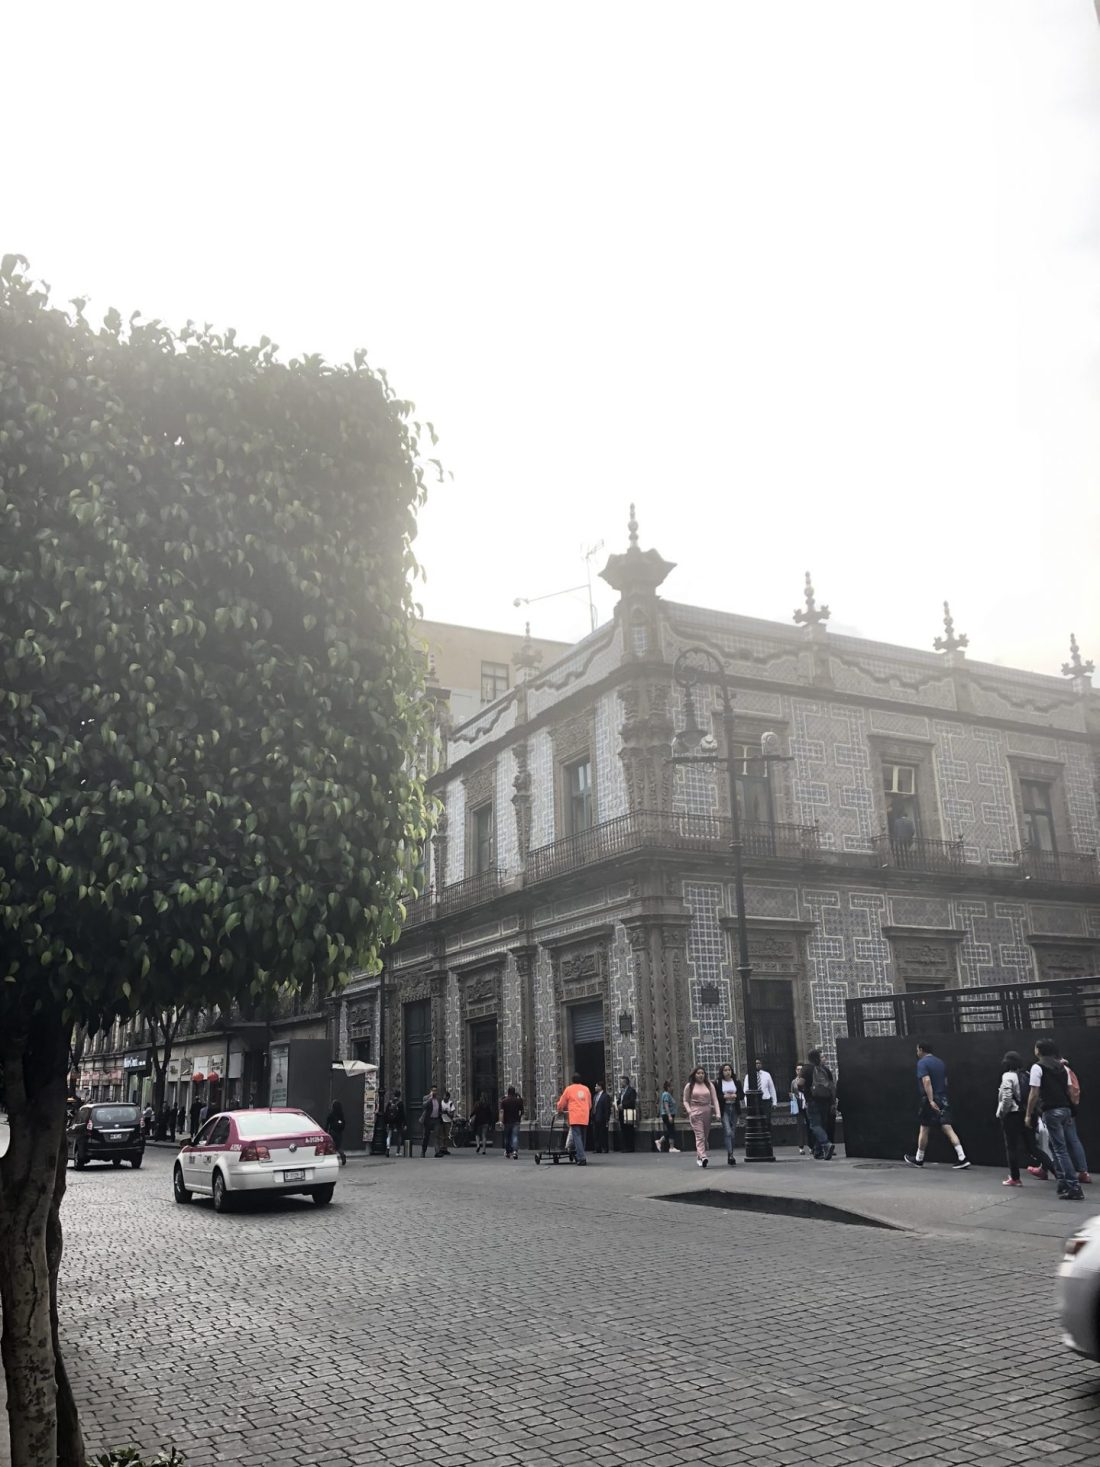 The House of Tiles or La Casa de los Azulejos, Mexico City